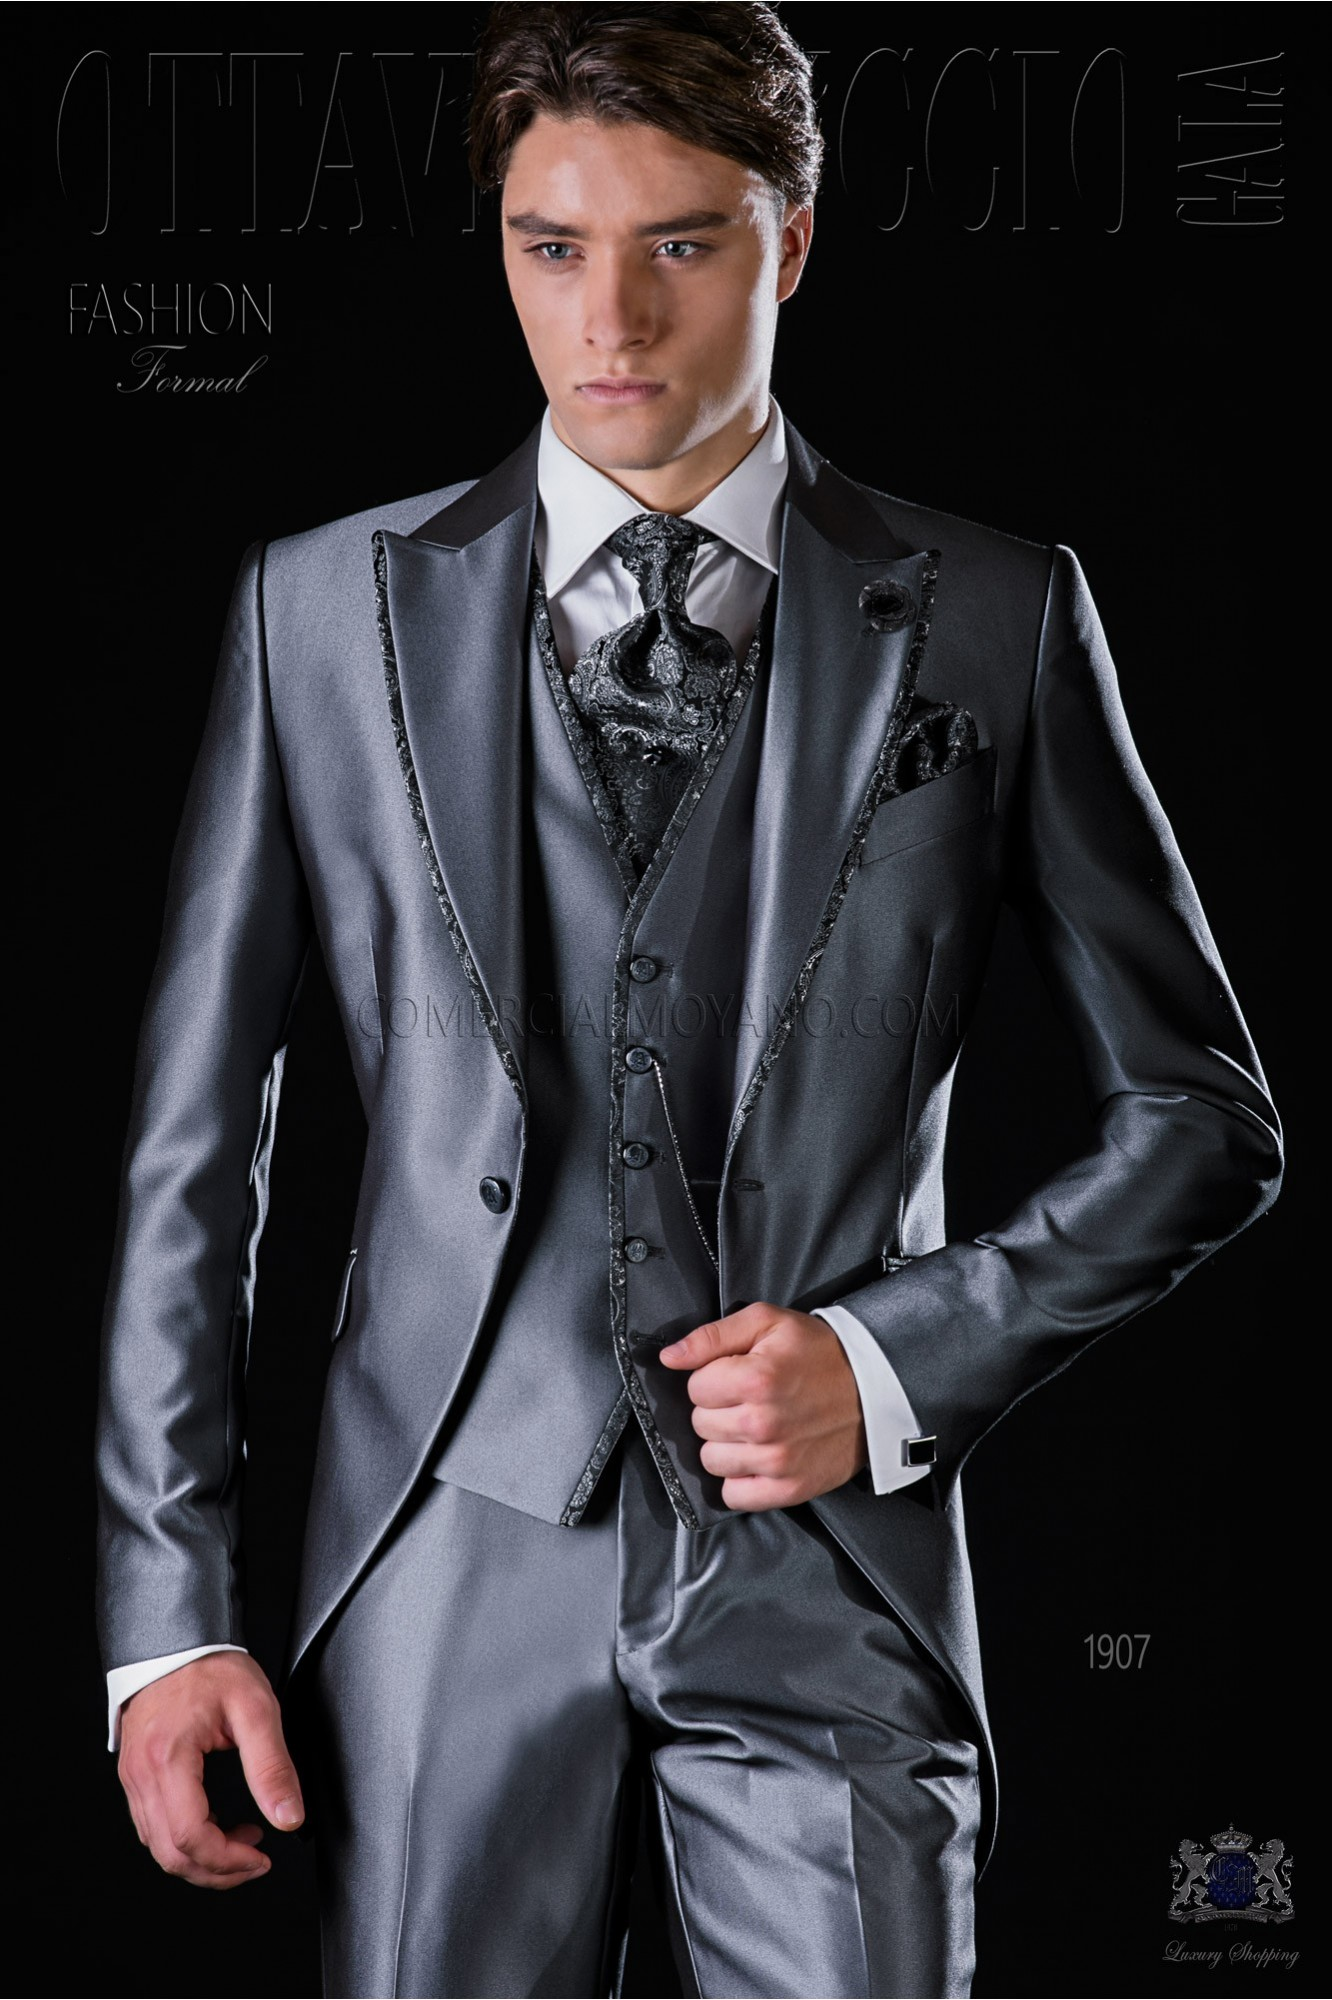 Italian bespoke anthracite grey frock coat suit